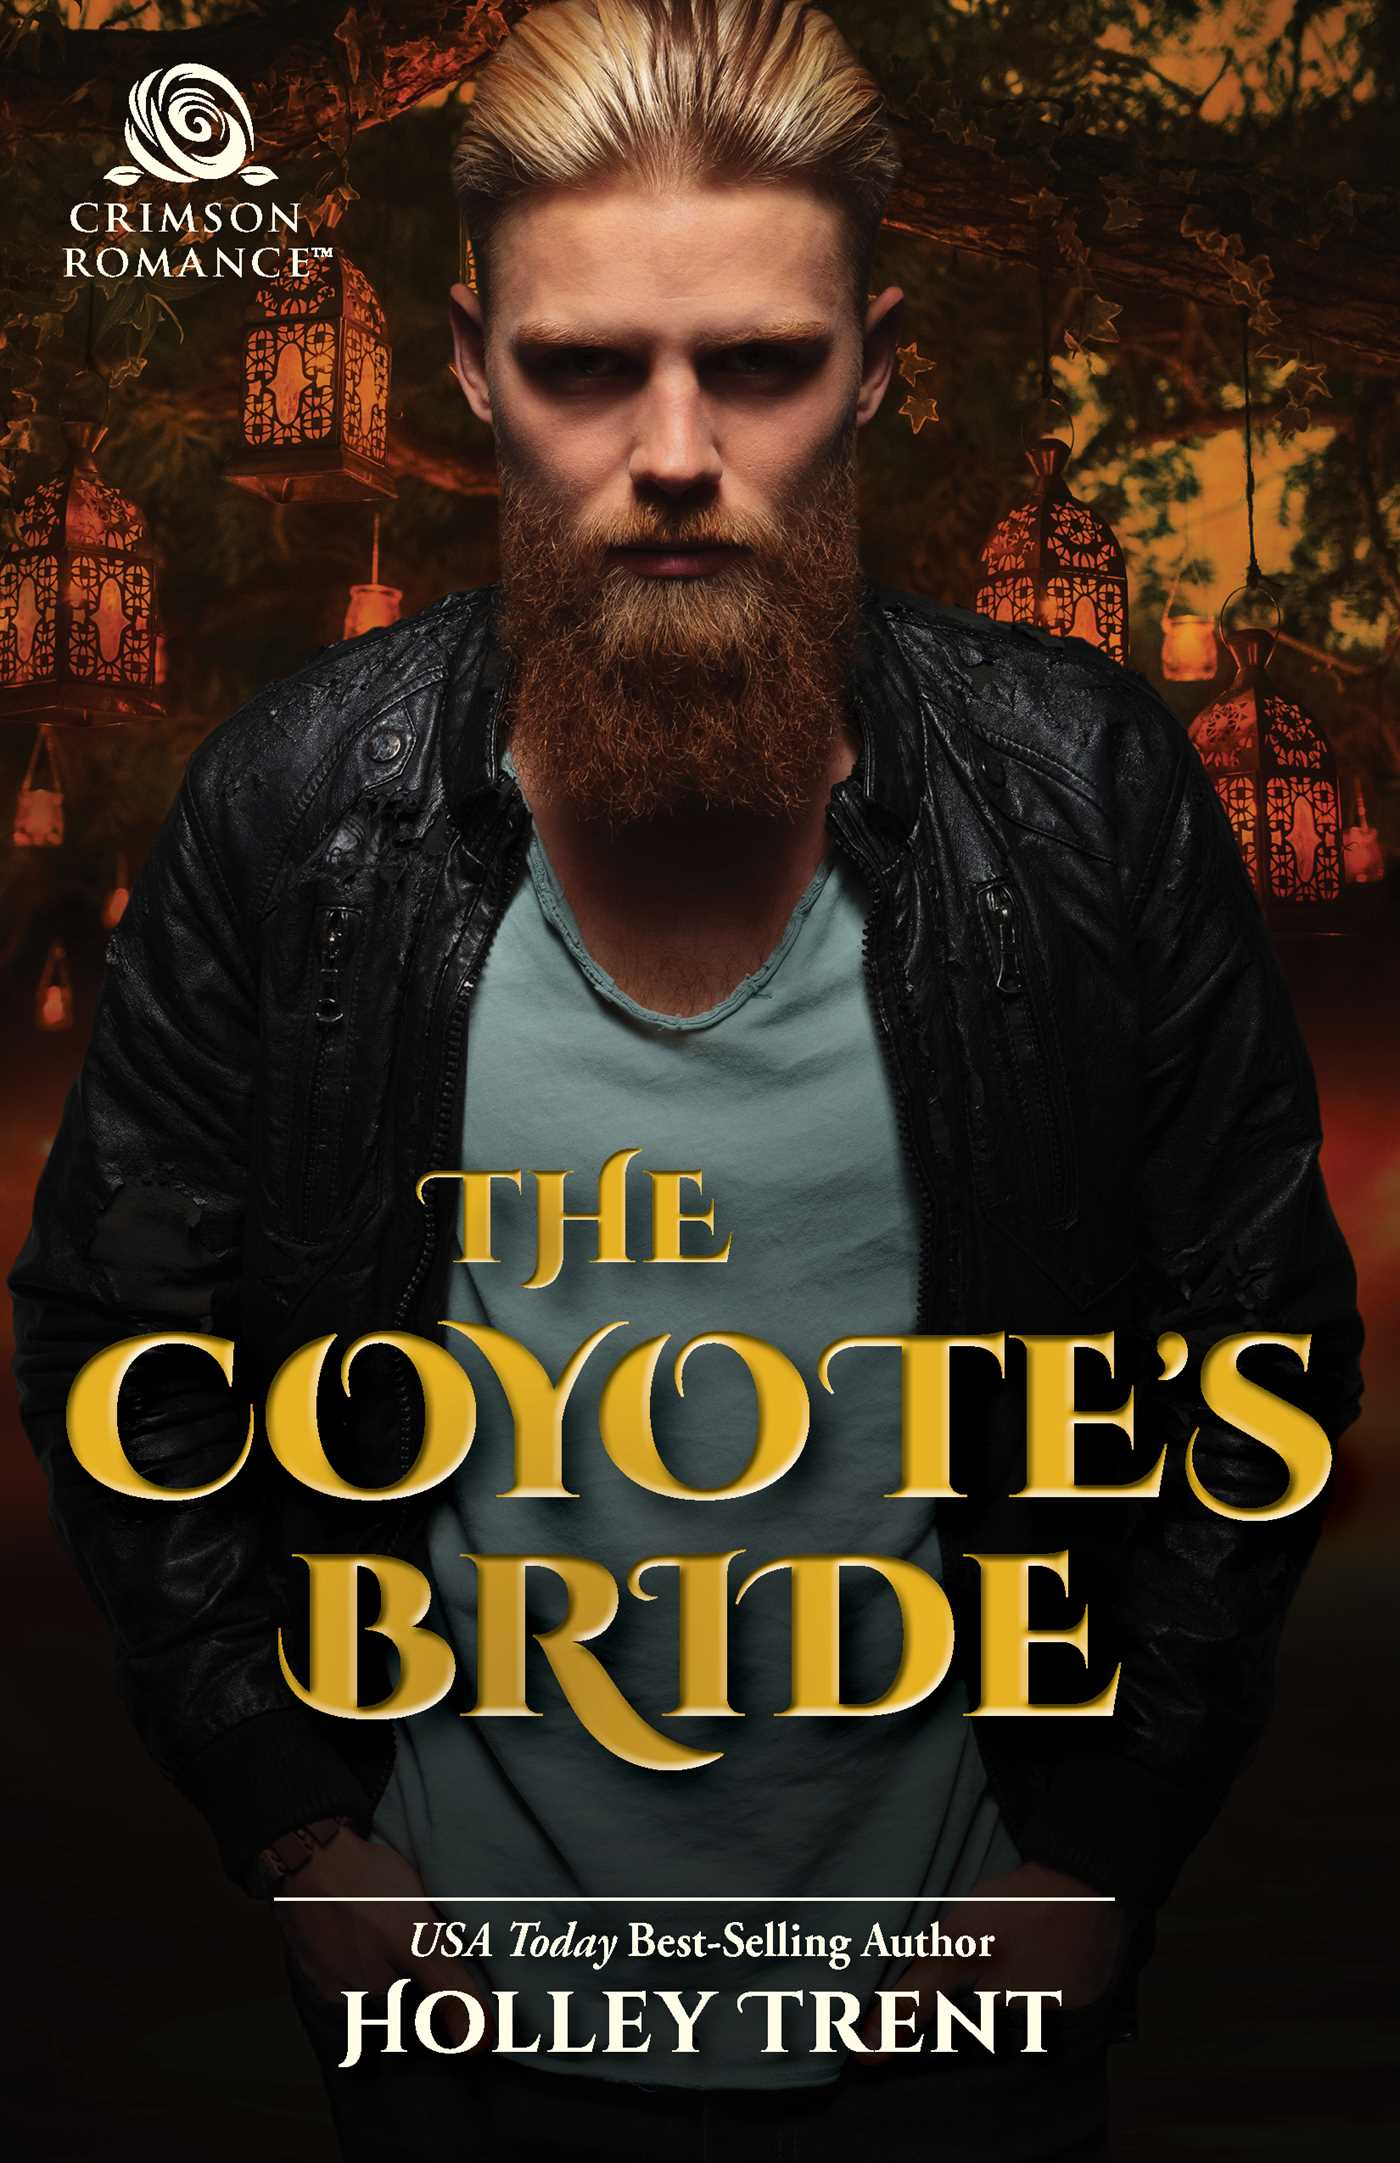 The coyotes bride ebook by holley trent official publisher page the coyotes bride 9781507208663 hr fandeluxe Image collections